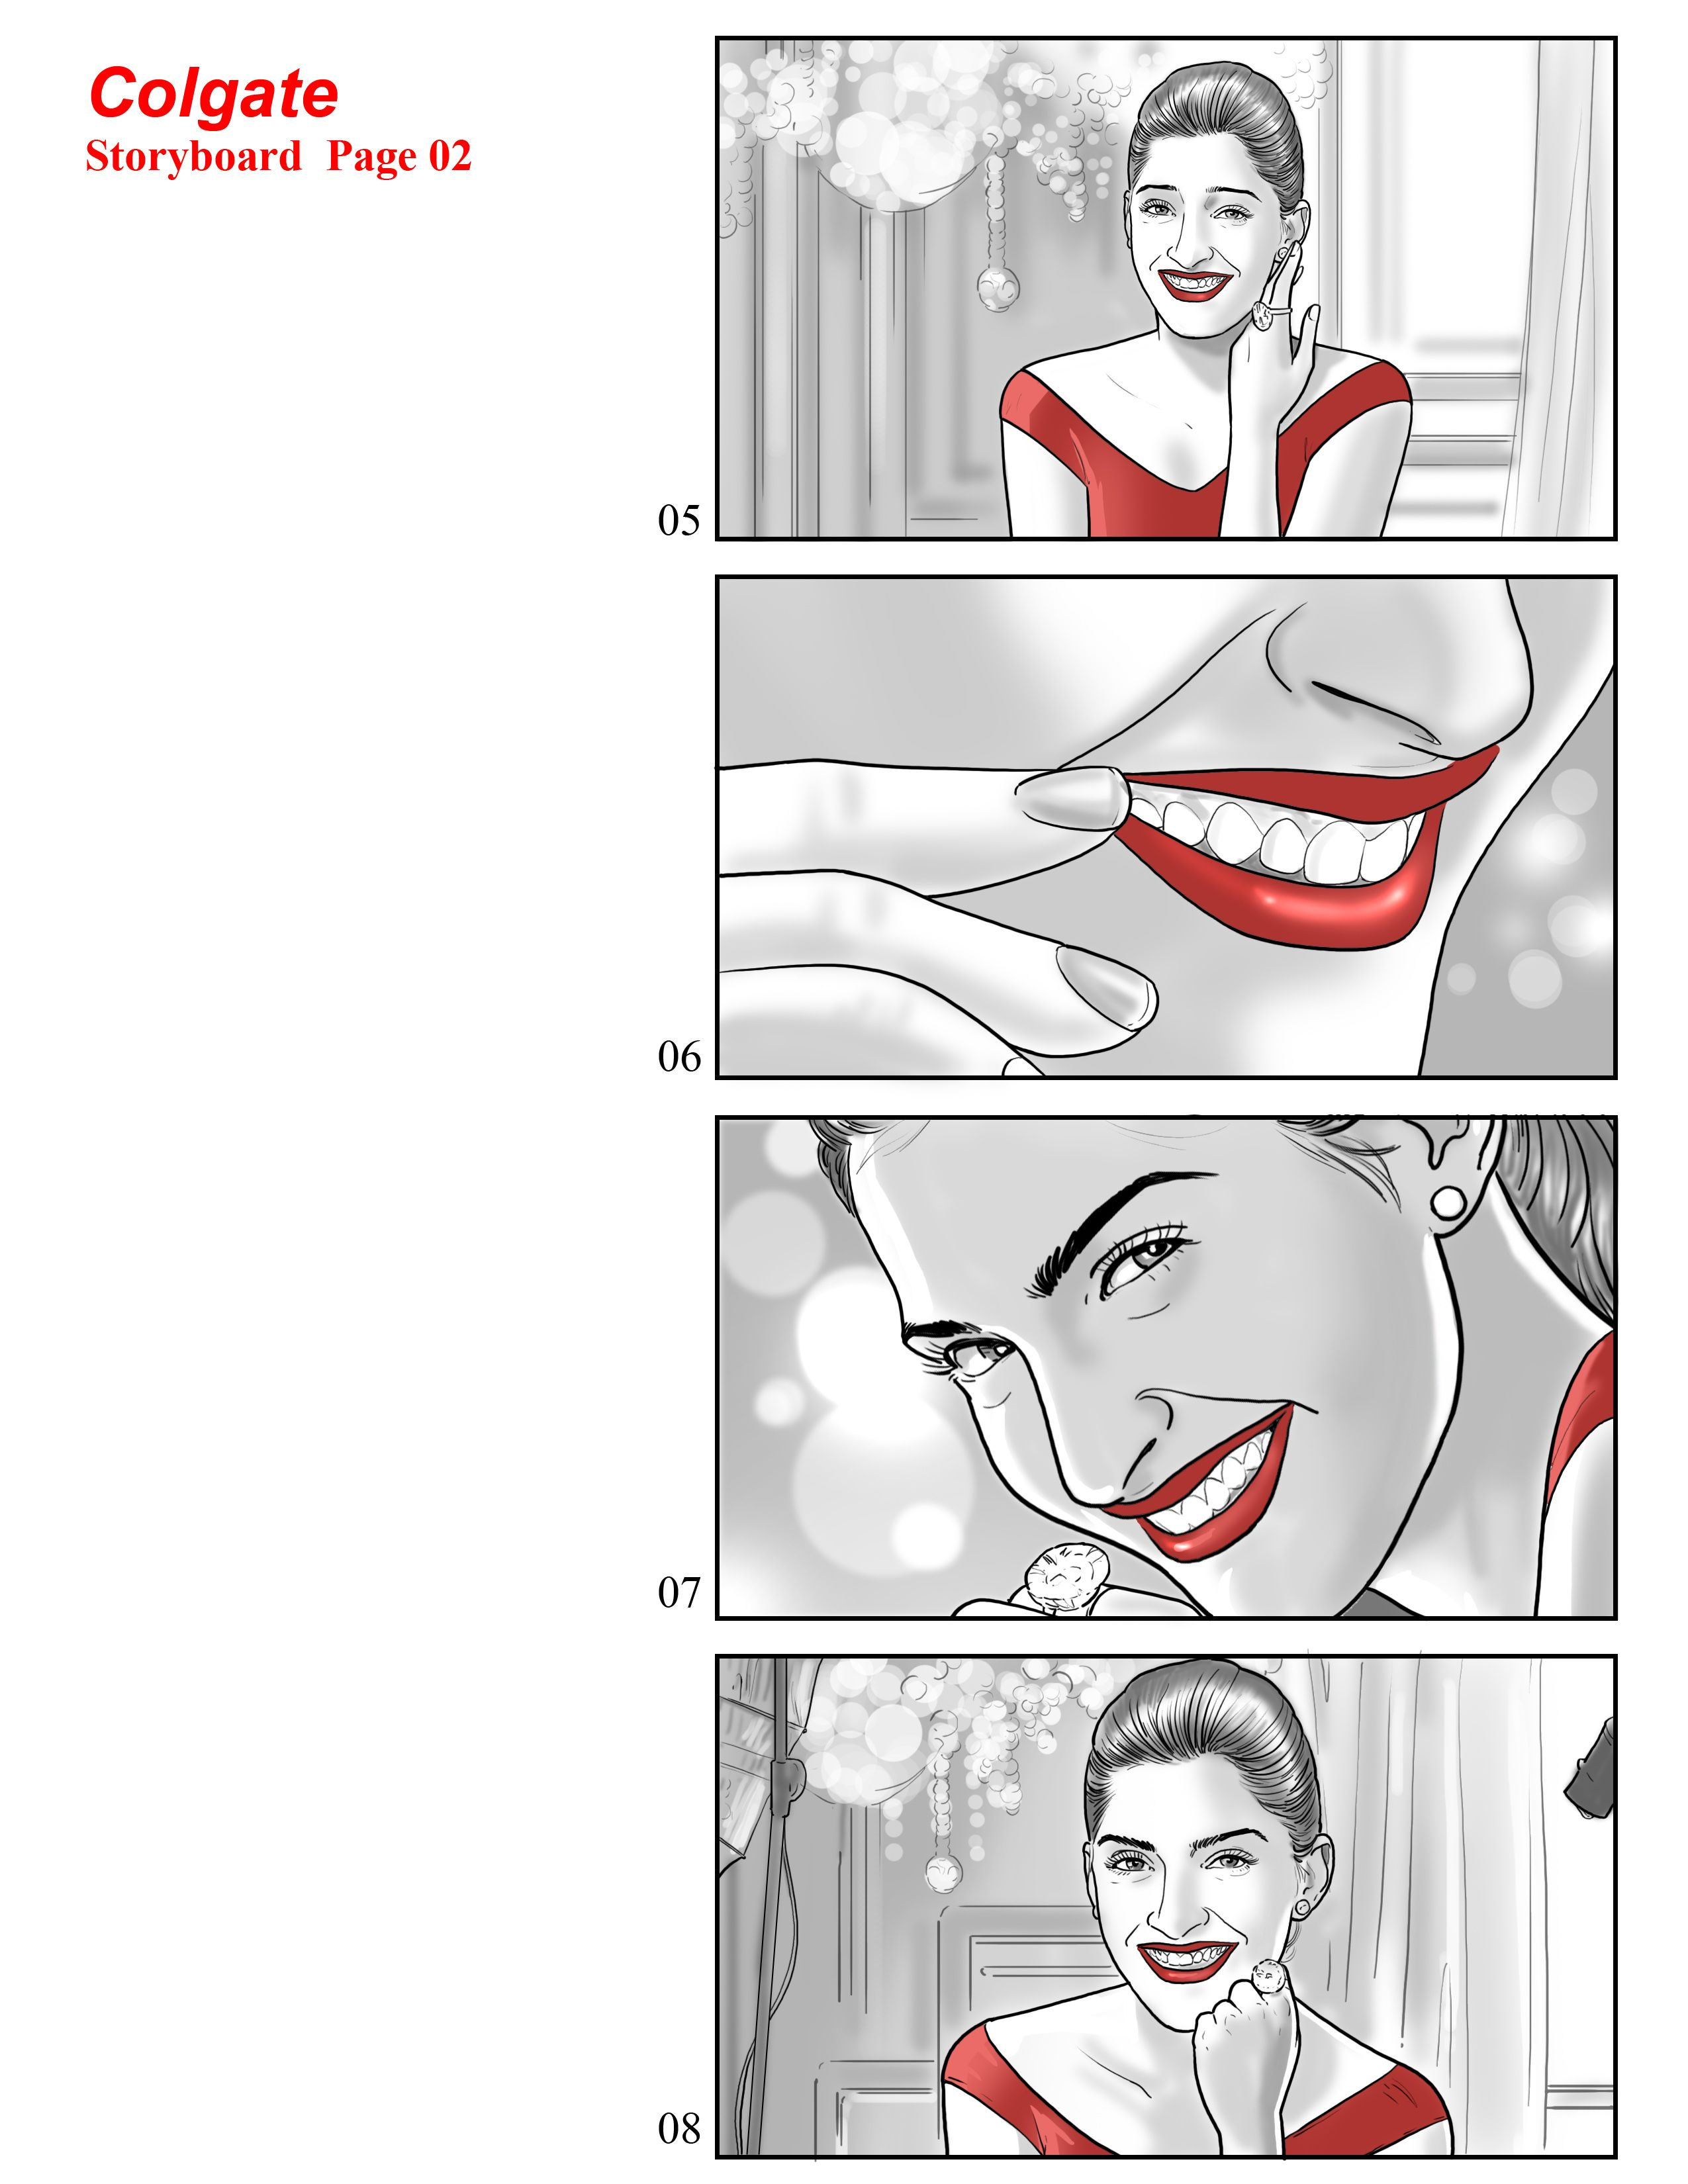 storyboard by obaid ansari